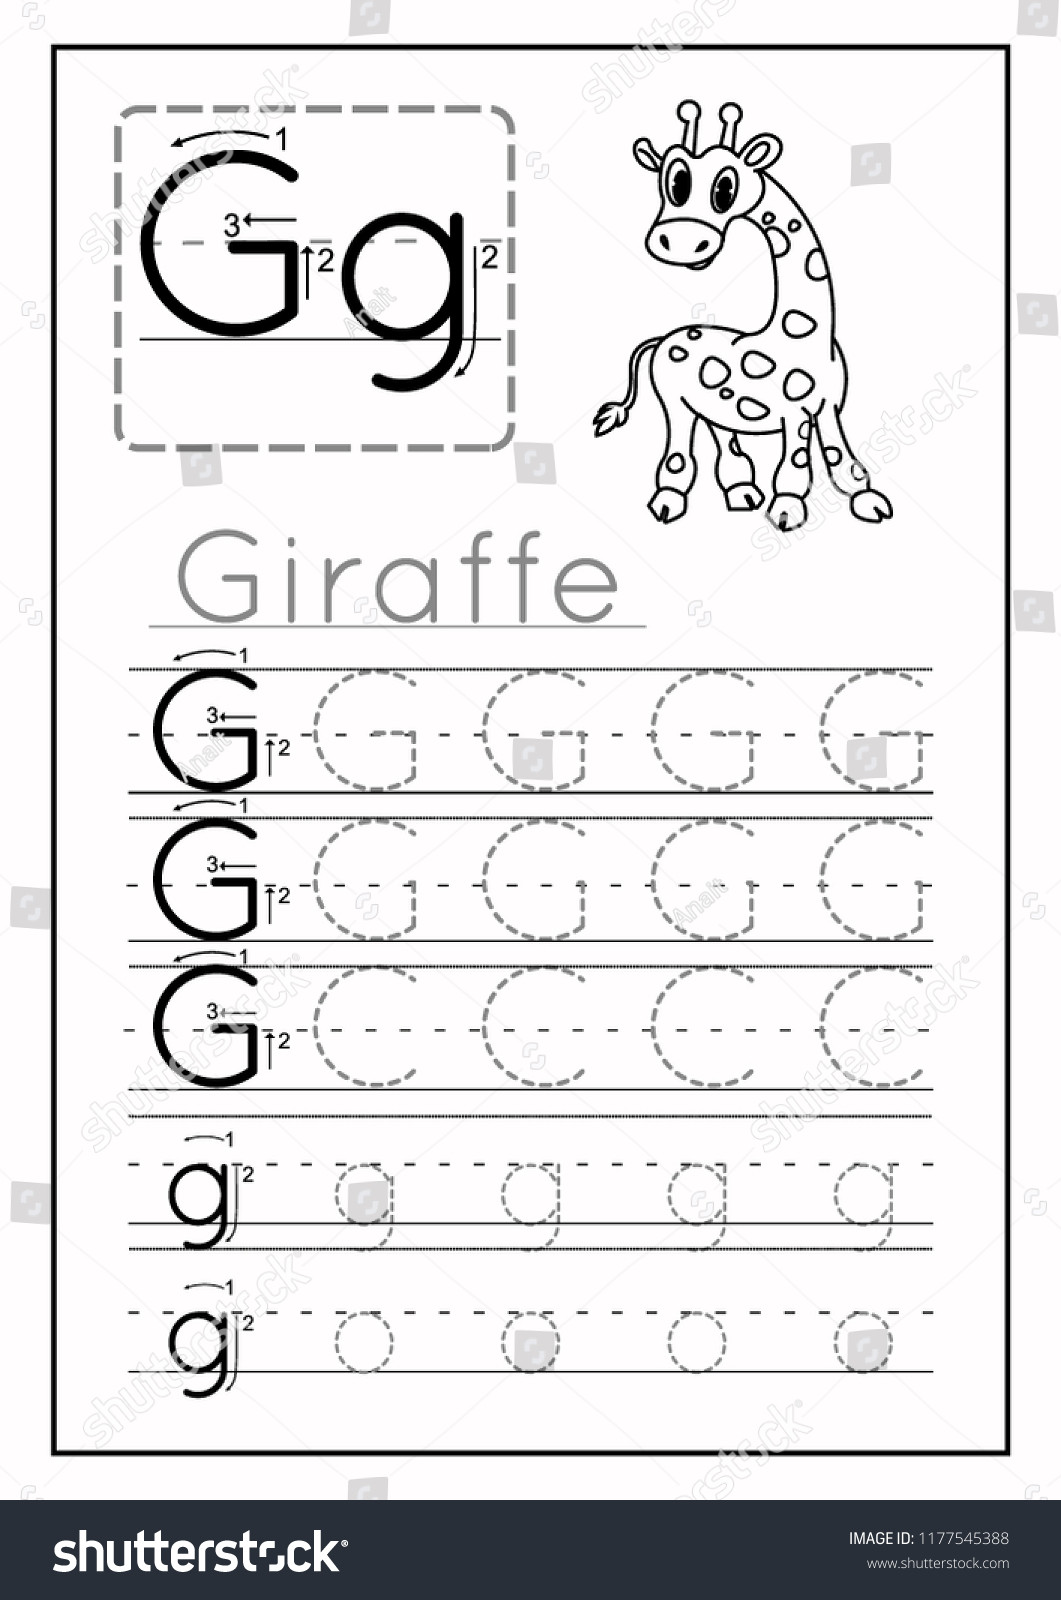 Letter G Worksheets Preschool Writing Practice Letter G Printable Worksheet Stock Vector